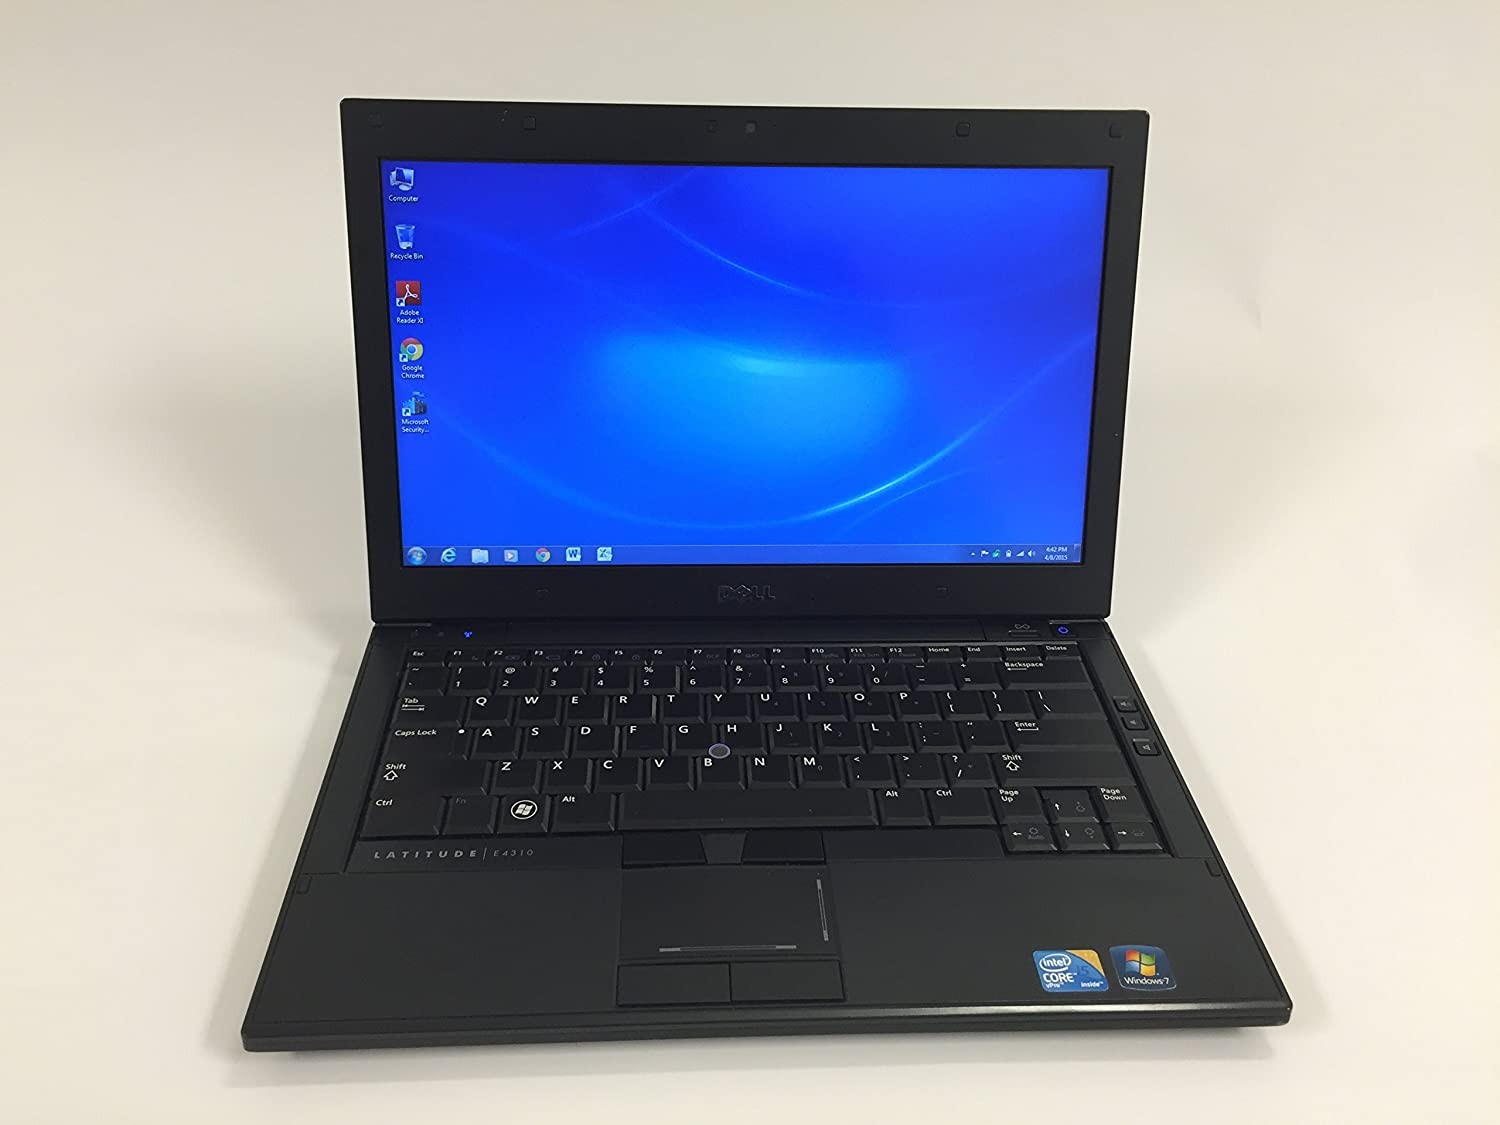 "Dell Latitude E4310 Core i5-540M Dual-Core 2.53GHz 4GB 250GB DVD±RW 13.3"" WLED Windows 7 Professional w/6-Cell & Bluetooth"